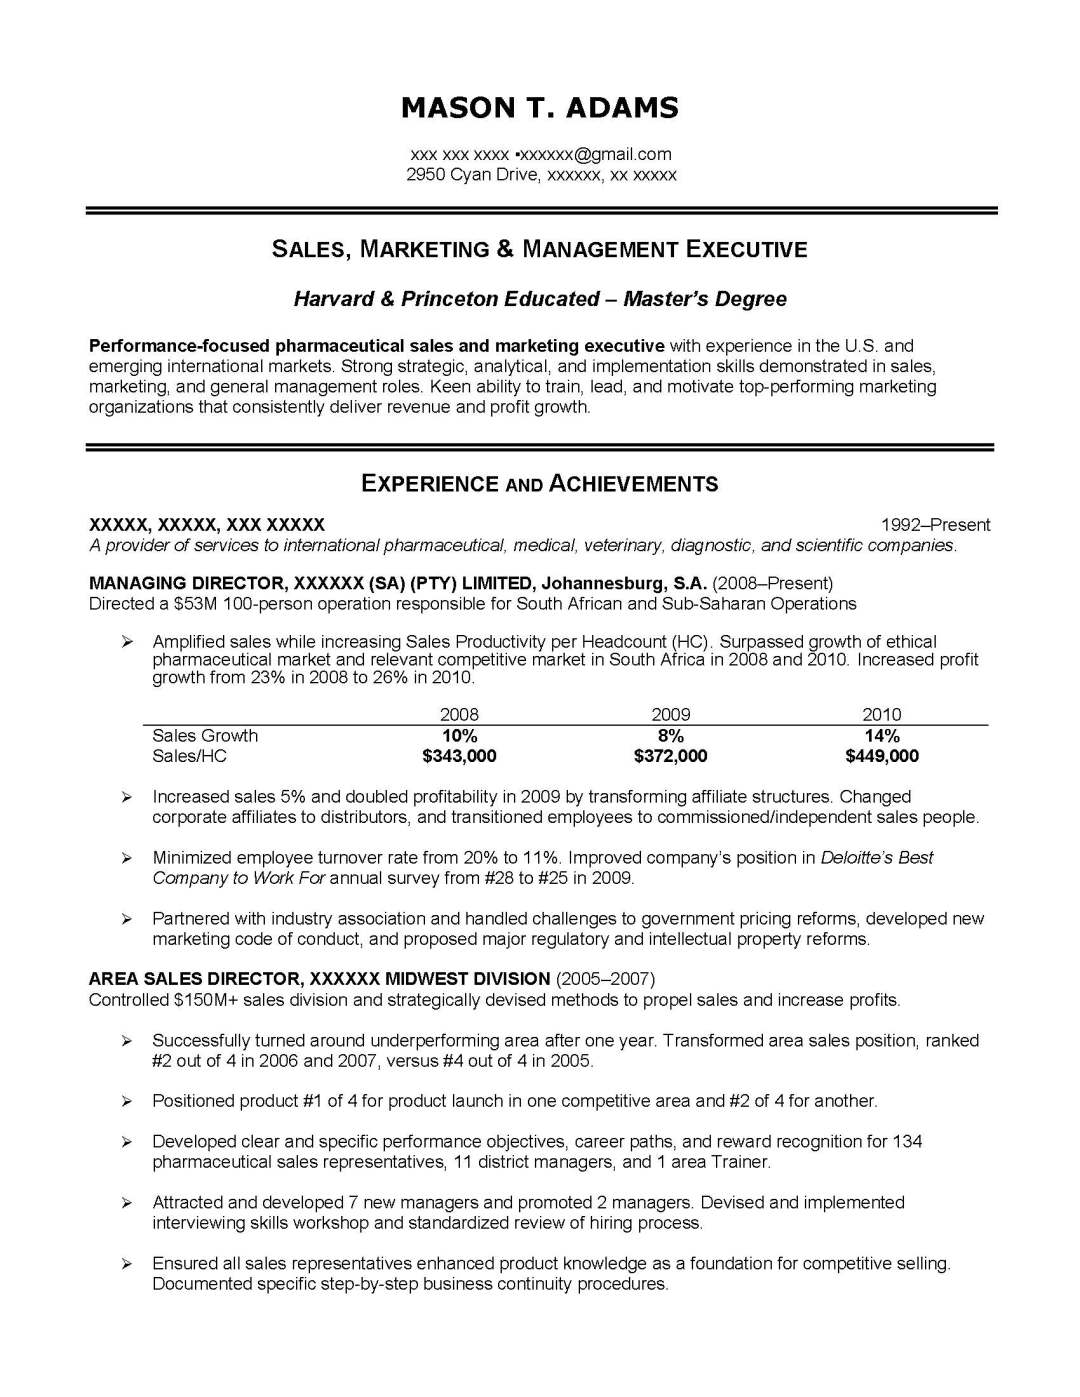 Sales consultant and resume – Business Analysis Report Sample